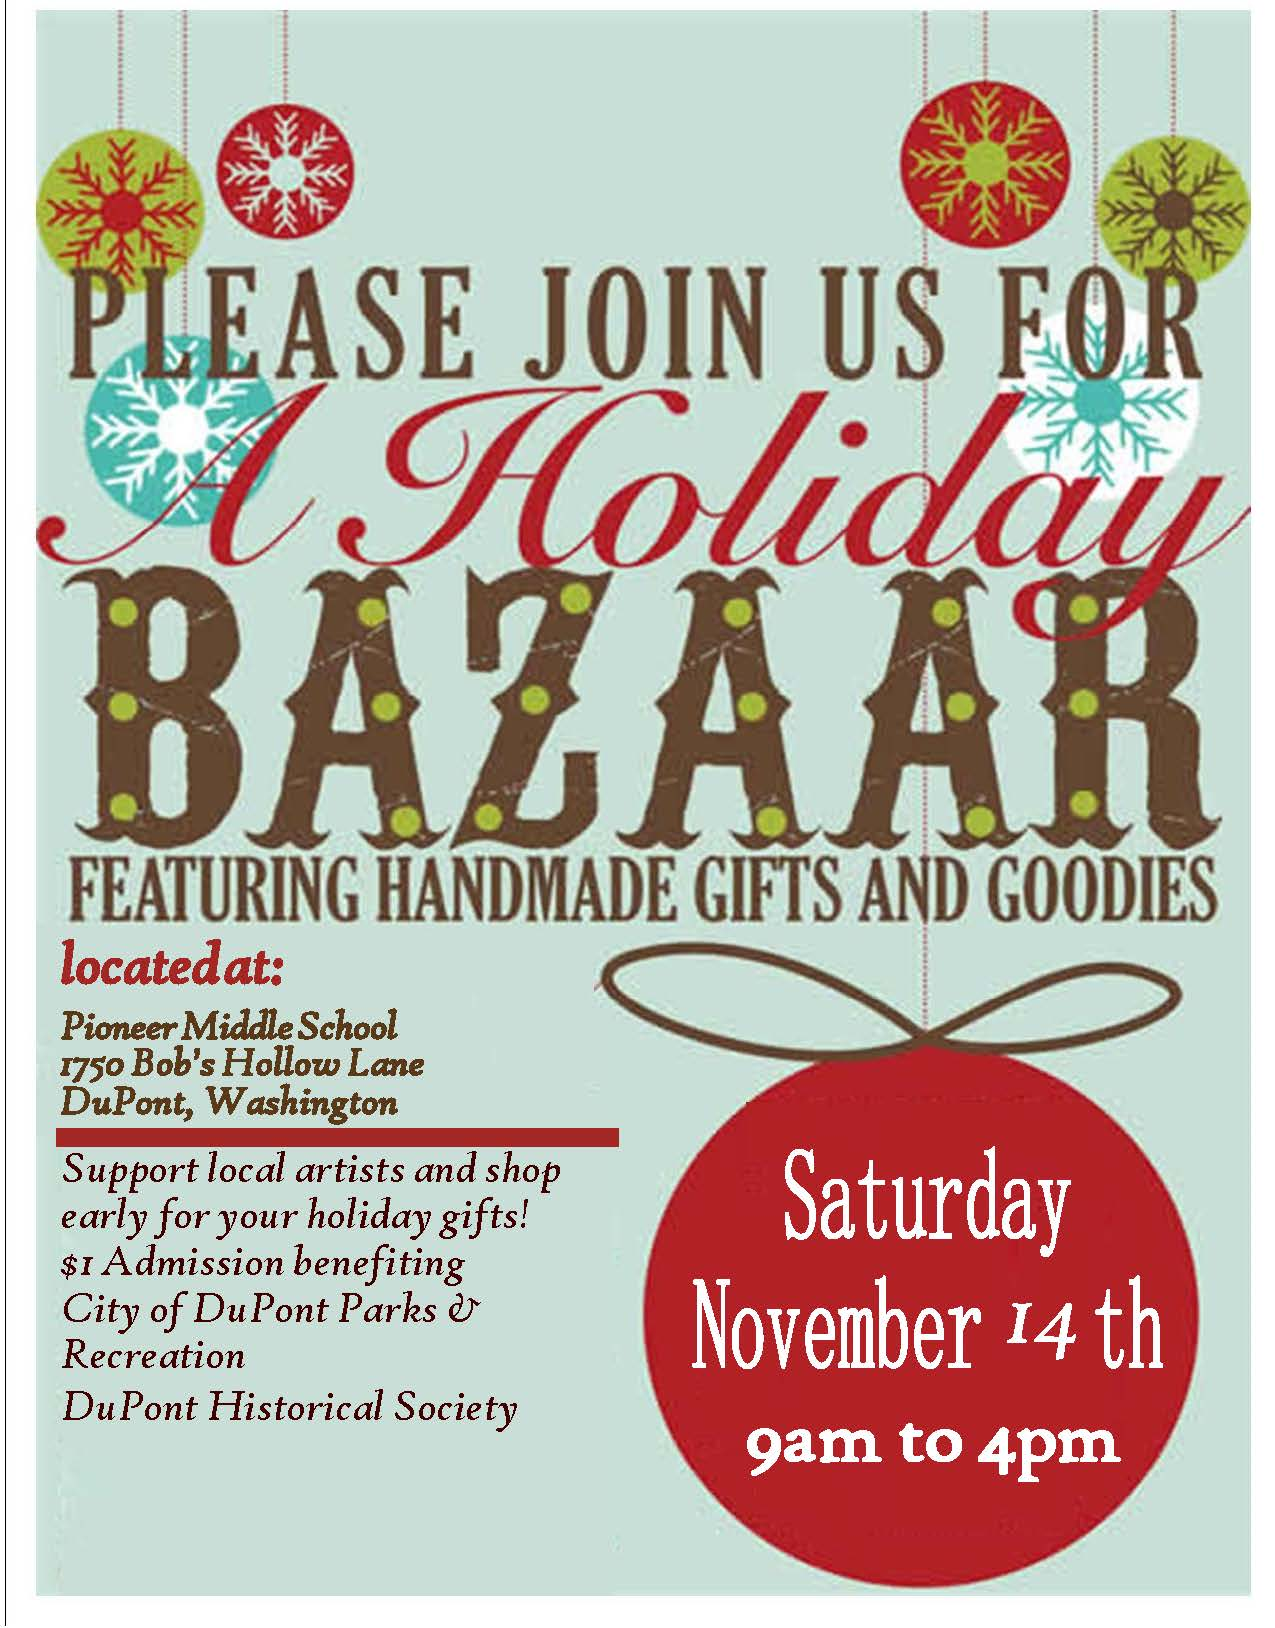 2015 holiday bazaar flyer